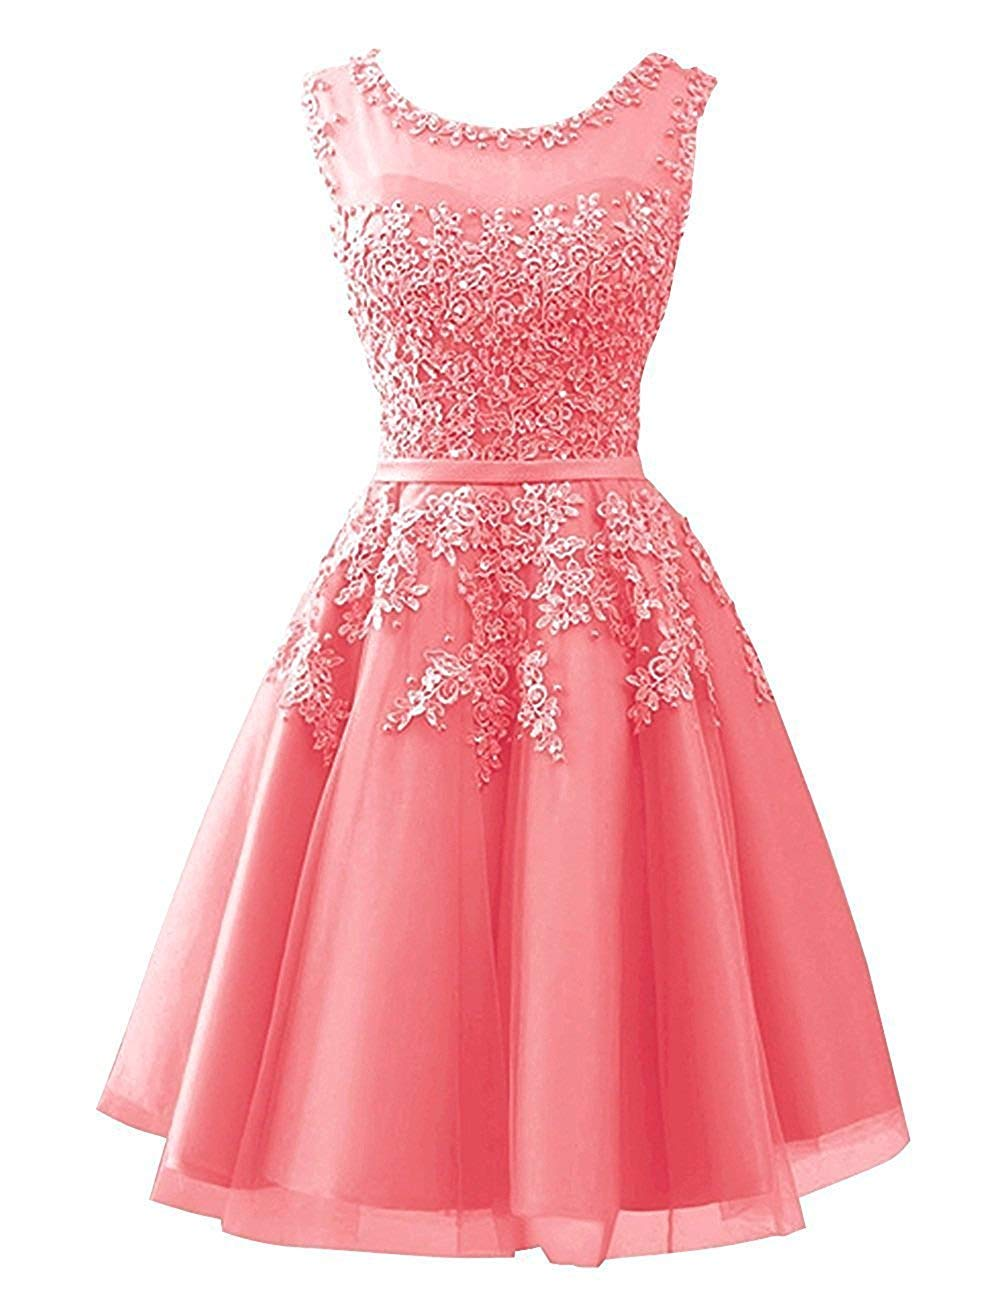 Yuki Isabelle Lace Appliques Tulle Homecoming Dresses Short Sleeveless Prom Party Dress for Junior by Yuki Isabelle (Image #1)